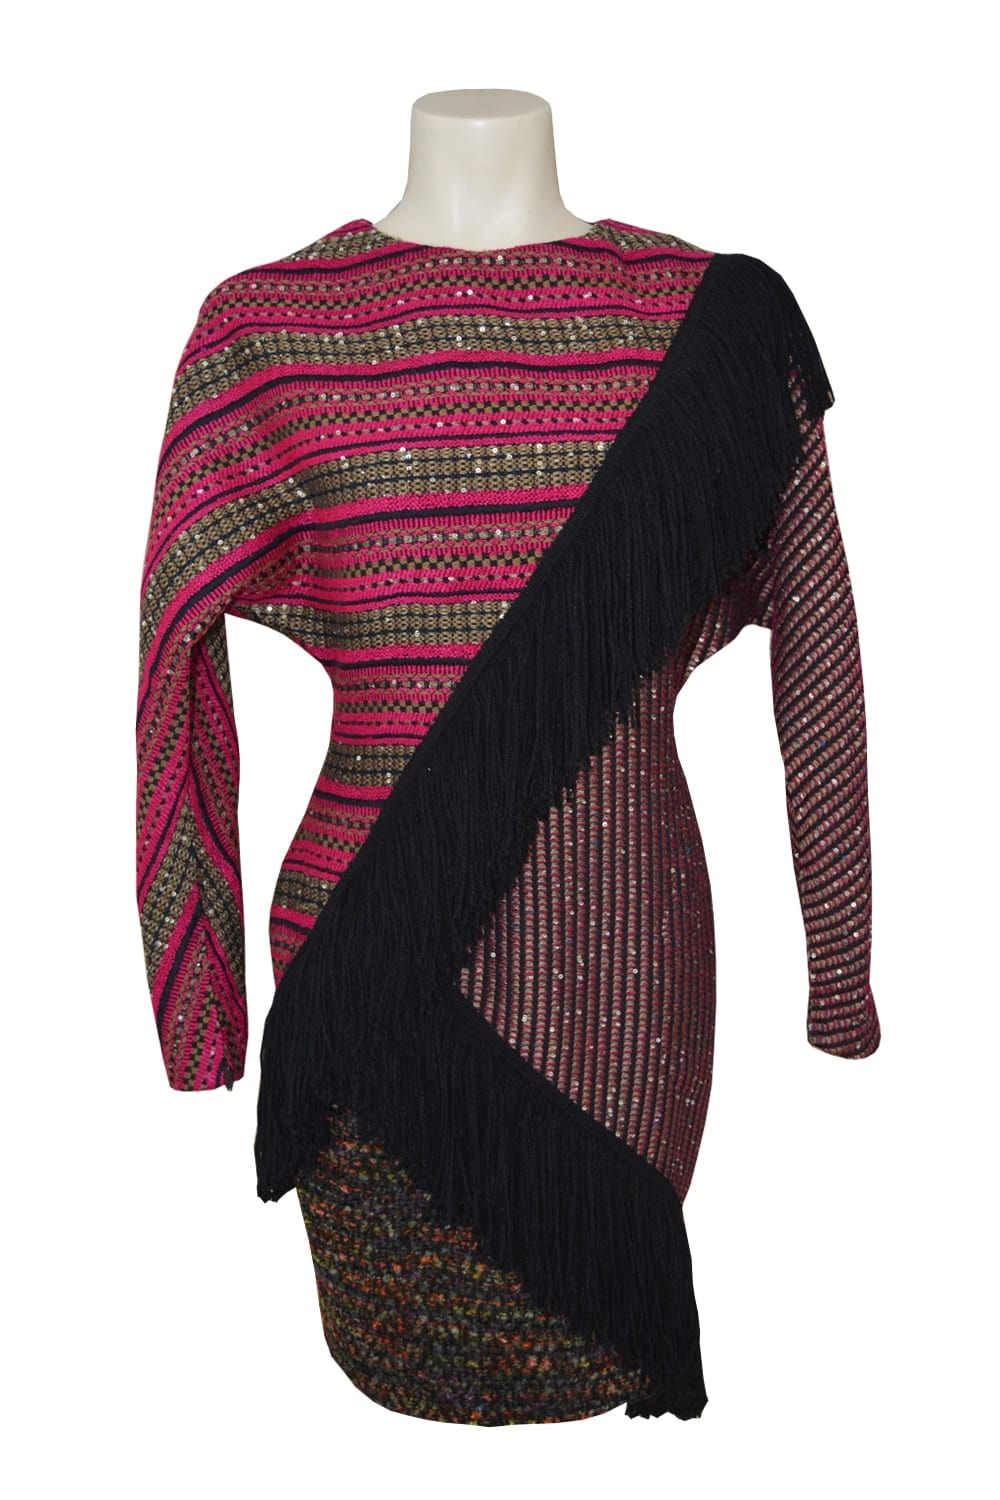 Asymmetrical wool dress. Choker underlined by a large band of wool fringes. Three tweeds of different weaves make up the entire dress.